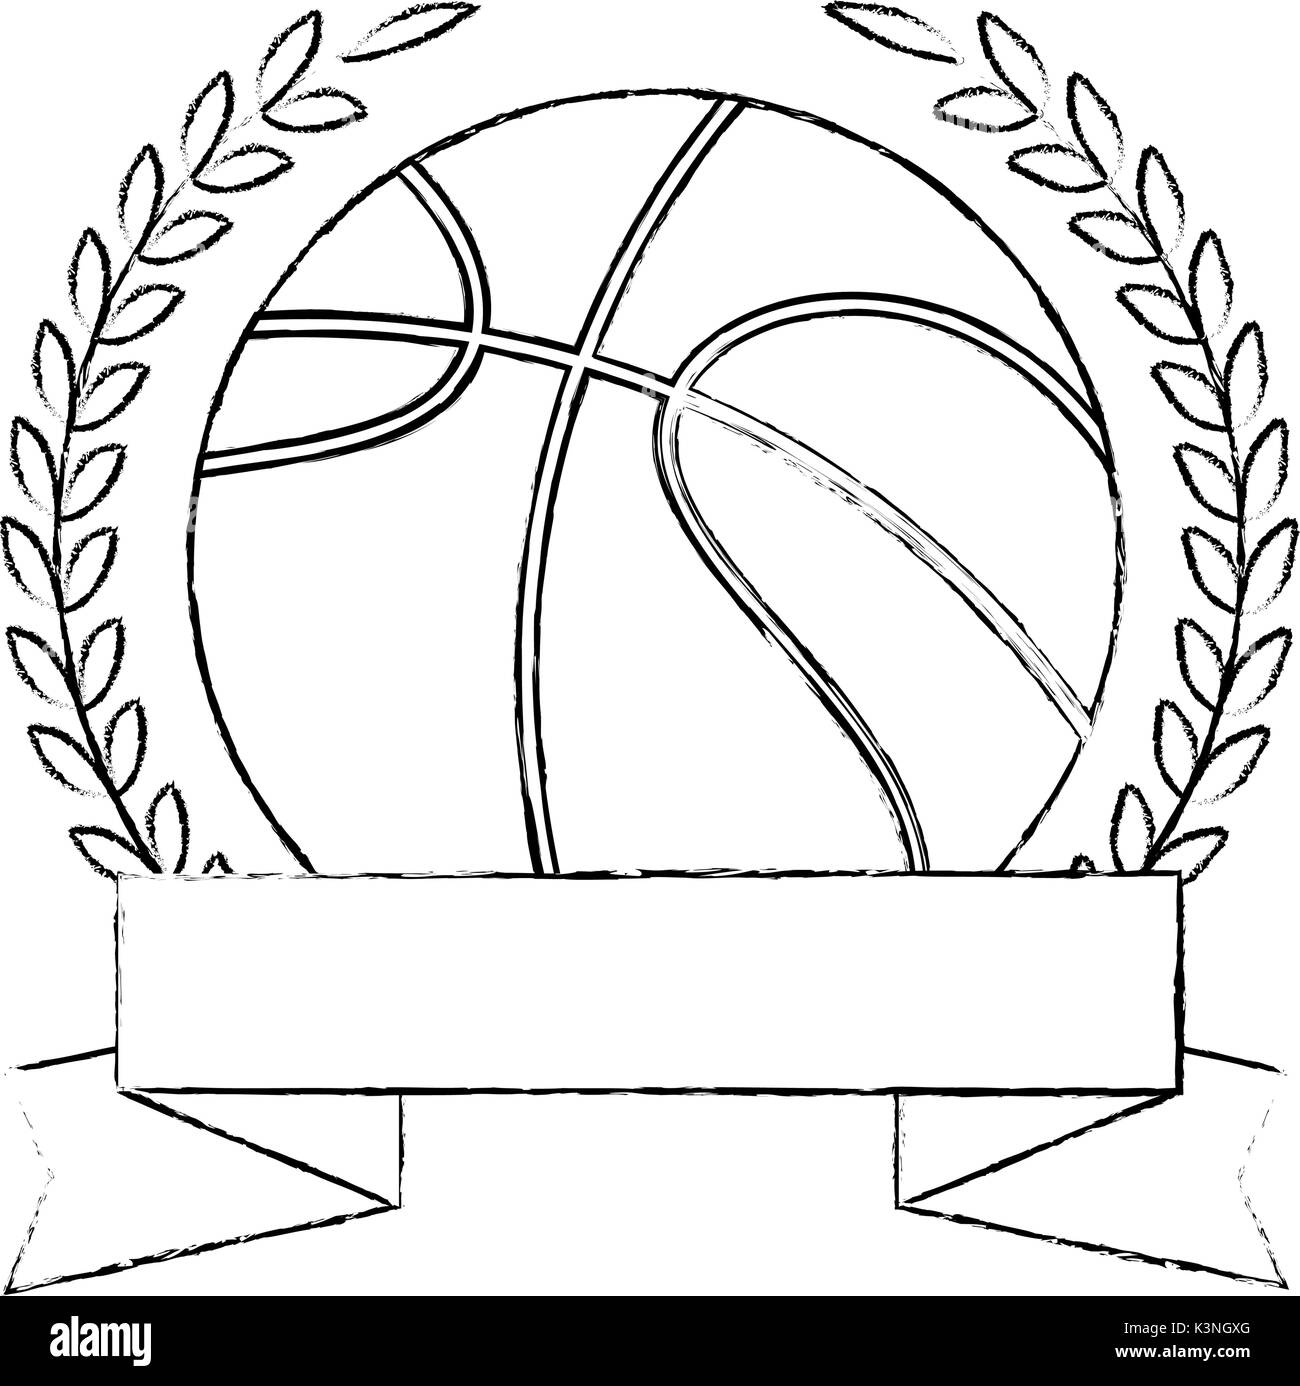 basketball sketch black and white stock photos images alamy  basketball ball emblem icon vector illustration graphic design stock image